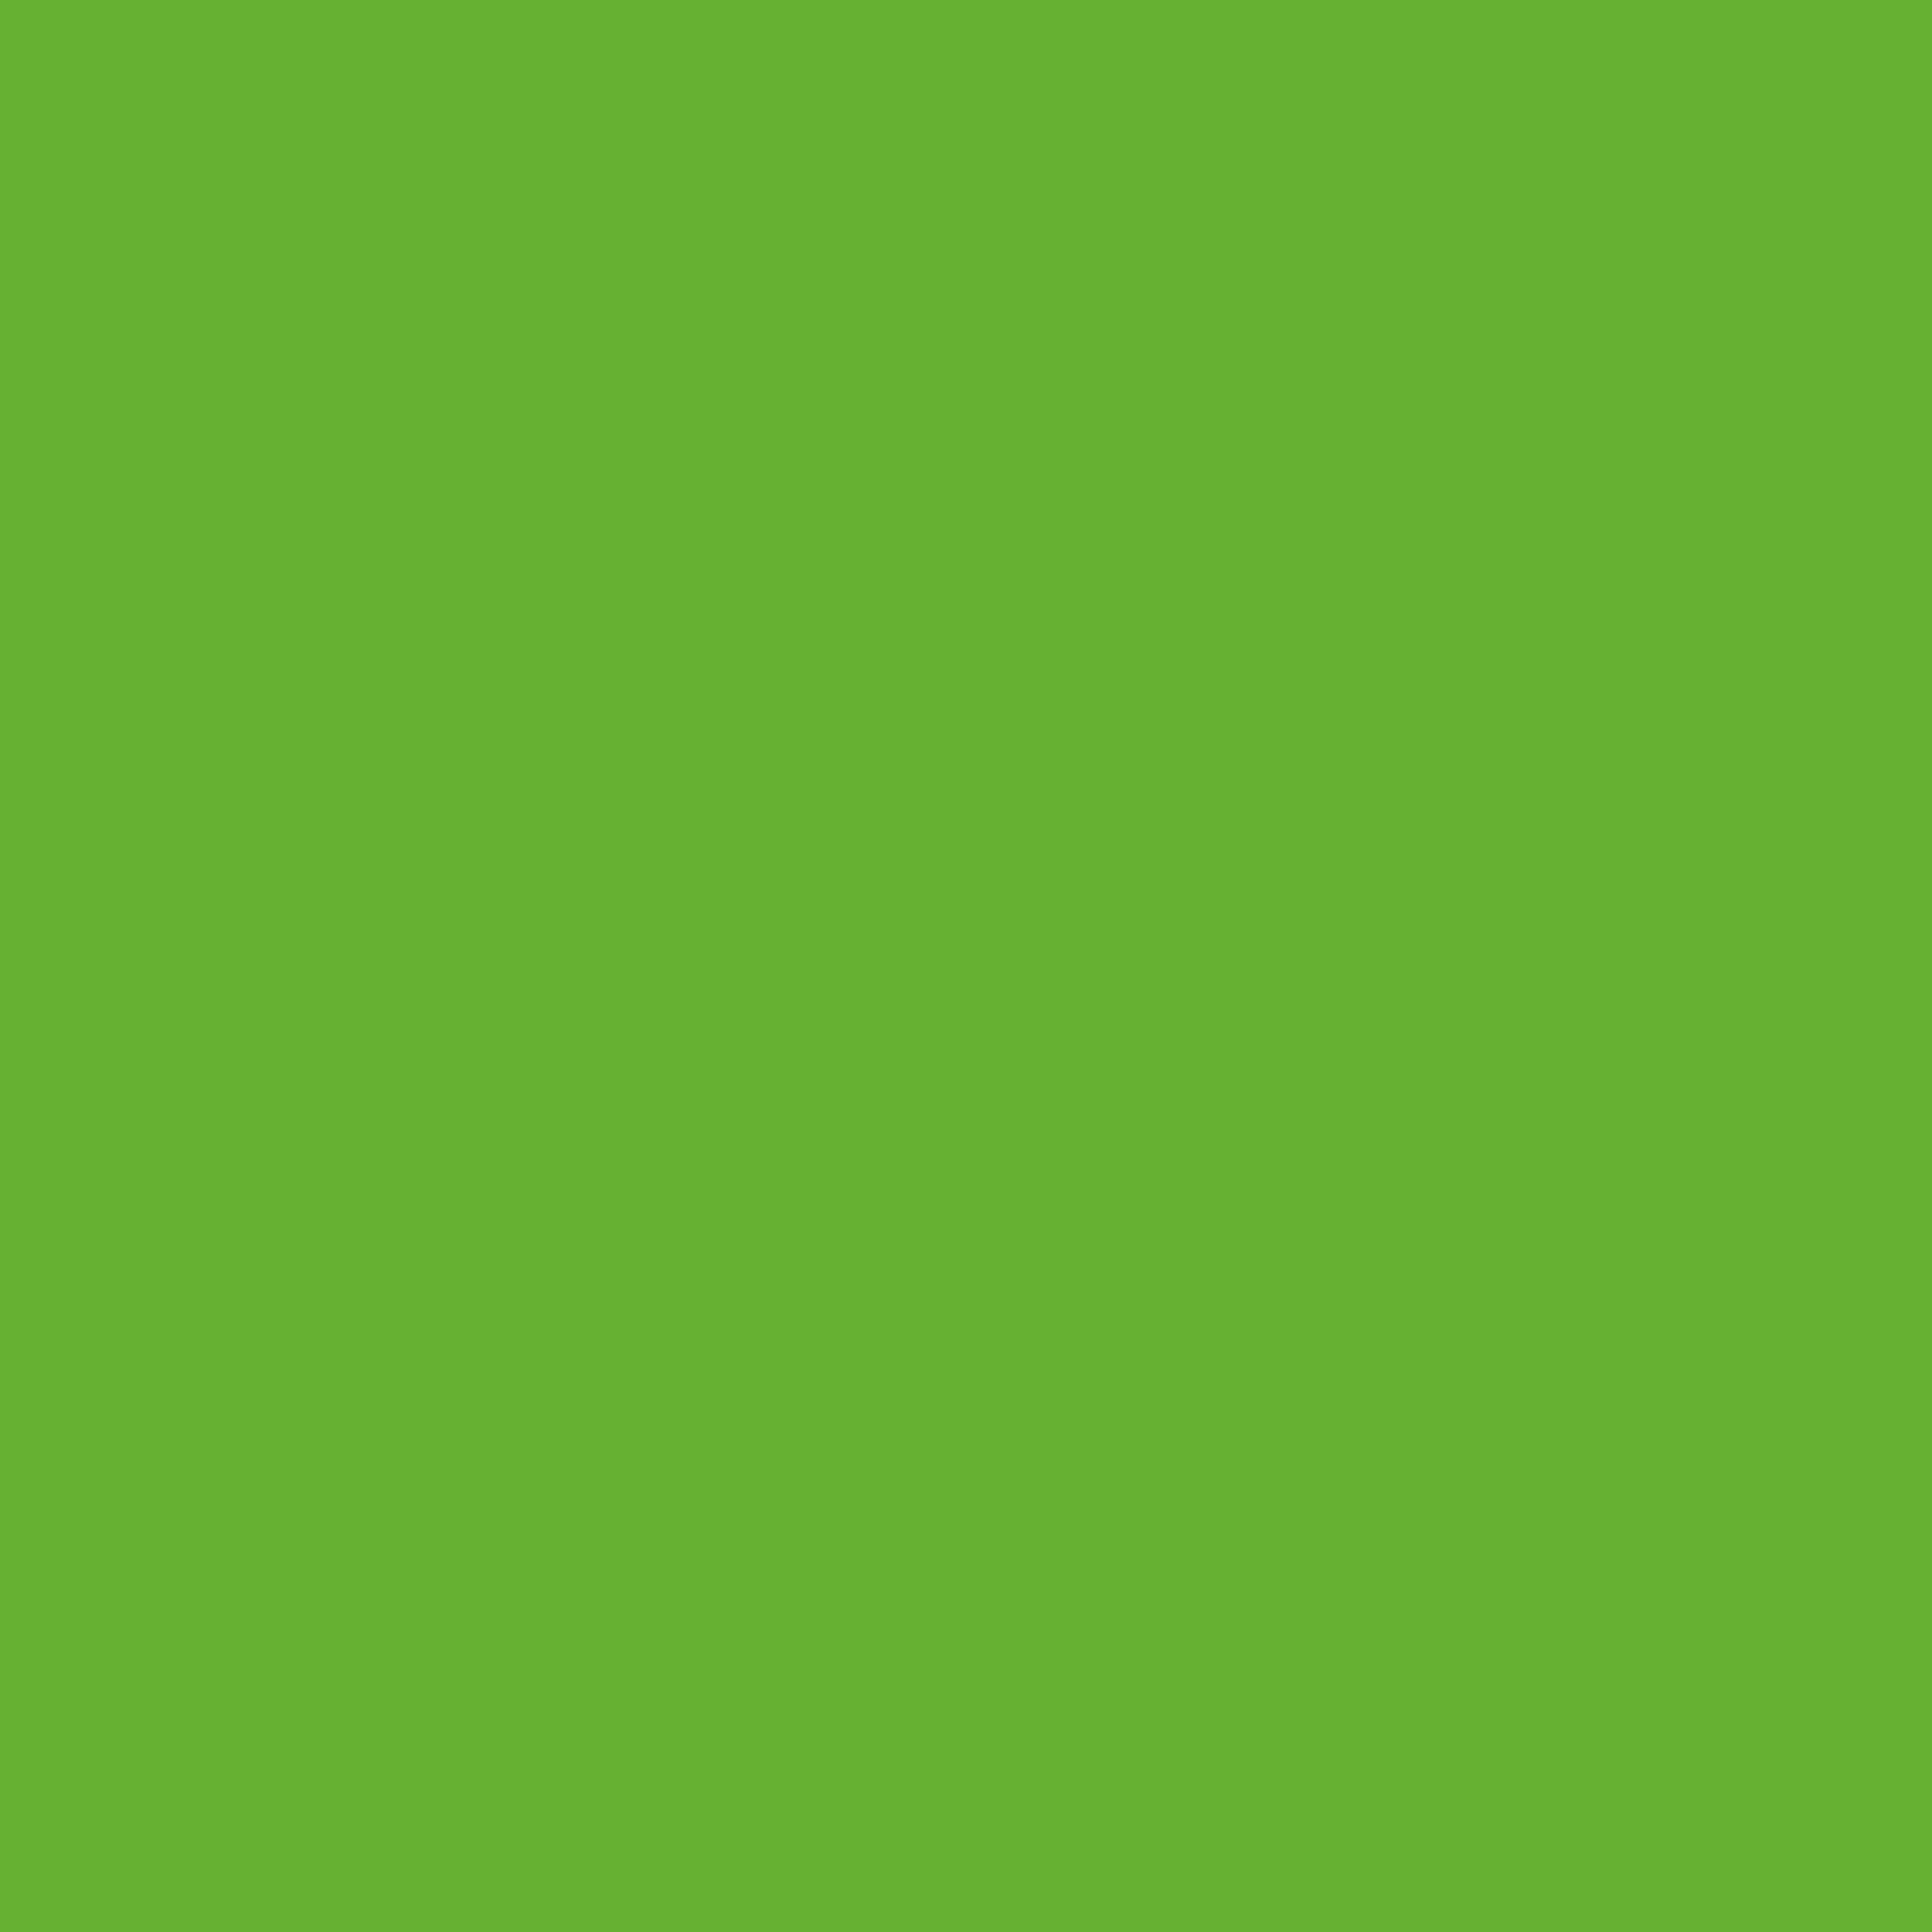 3600x3600 Green RYB Solid Color Background